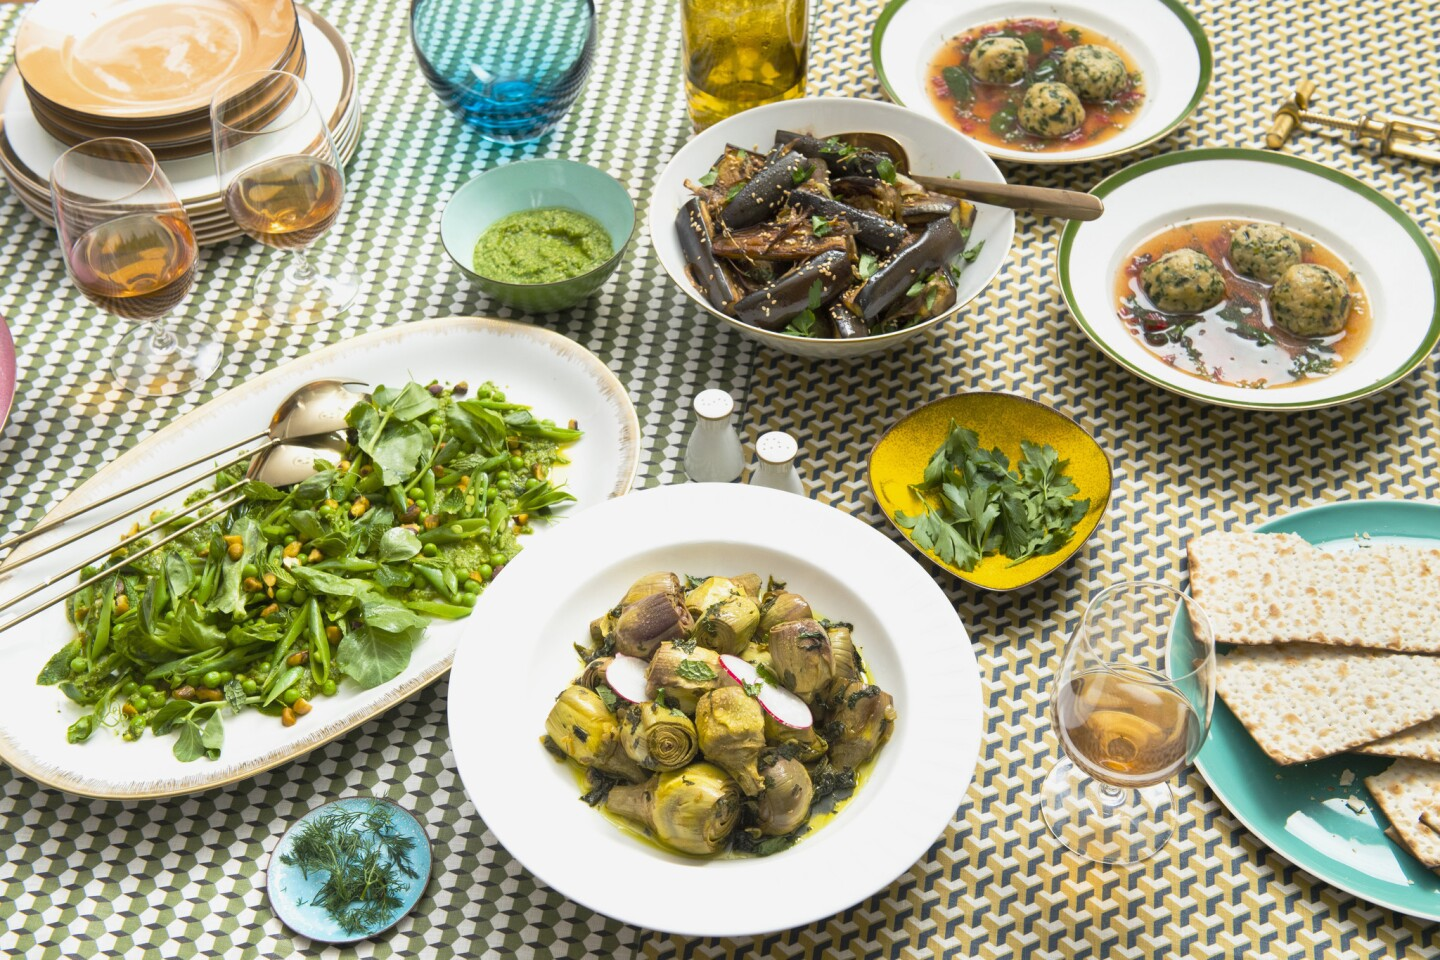 Cook's countdown for the Passover Seder meal